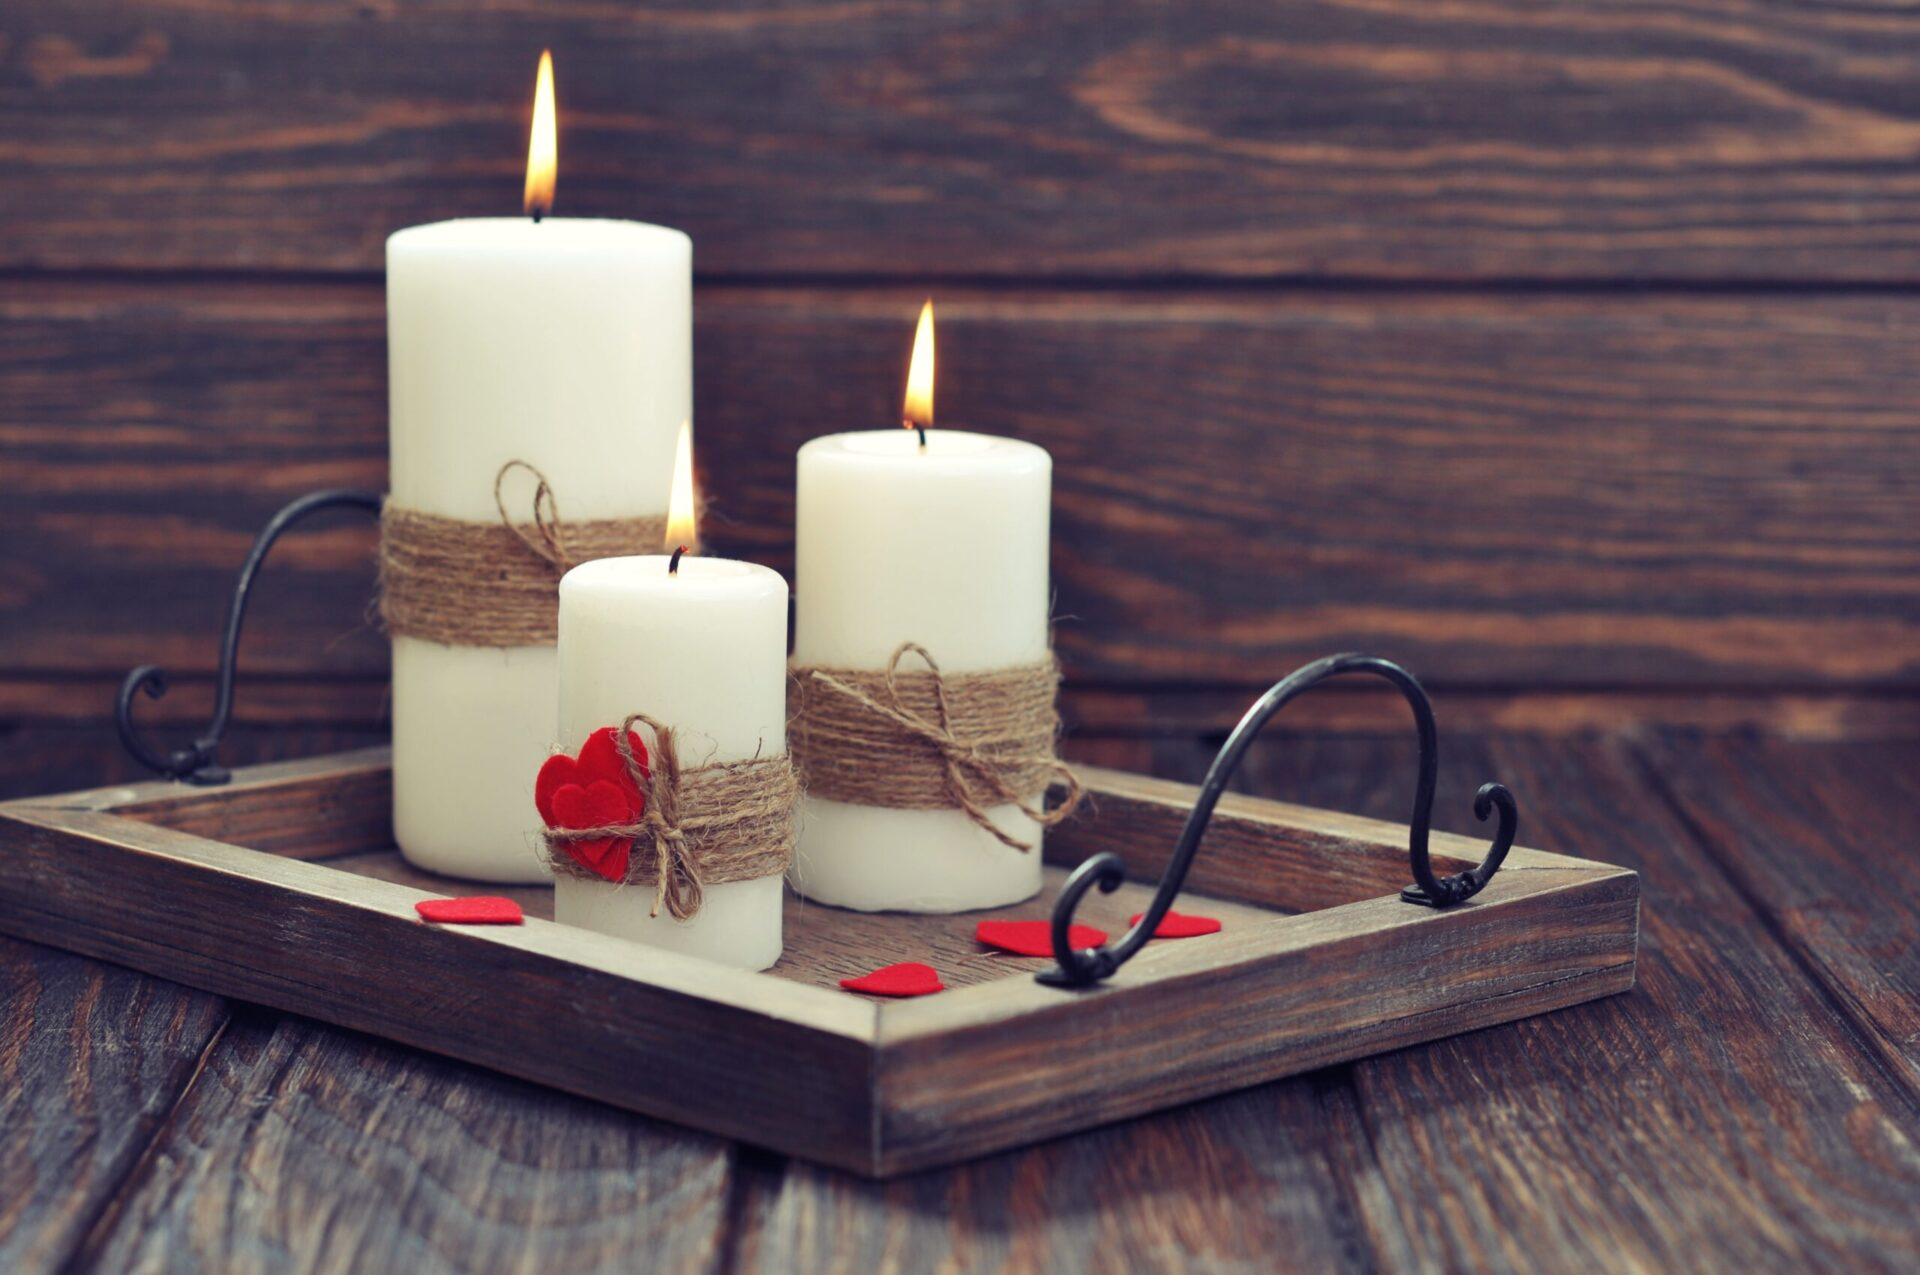 Candles on vintage tray with fabric hearts on wooden